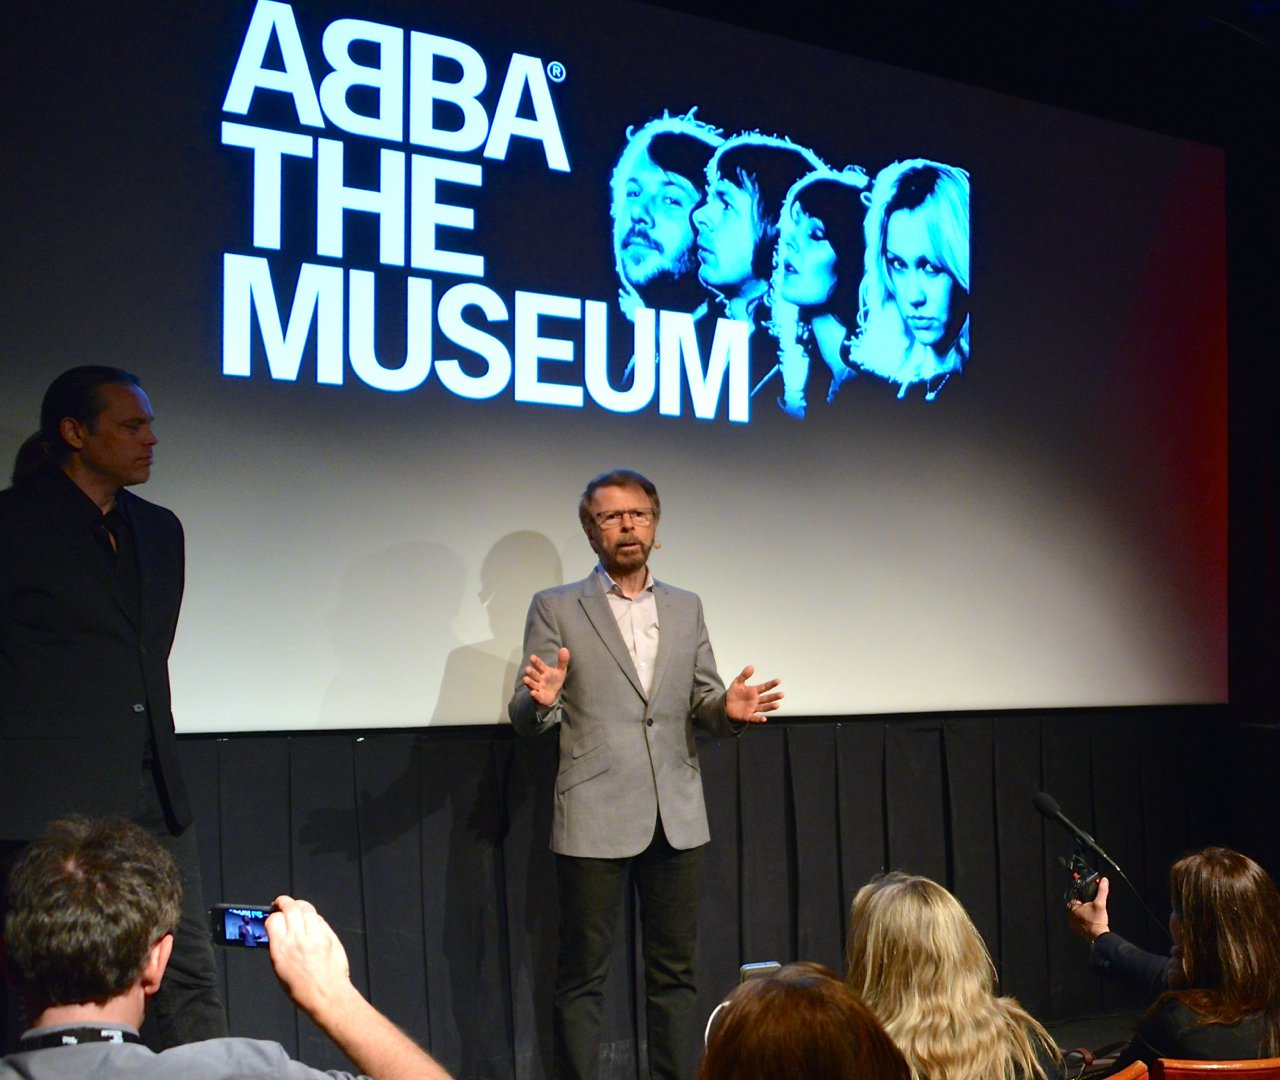 Frankie Fouganthin 2 40 Things You Probably Didn't Know About ABBA